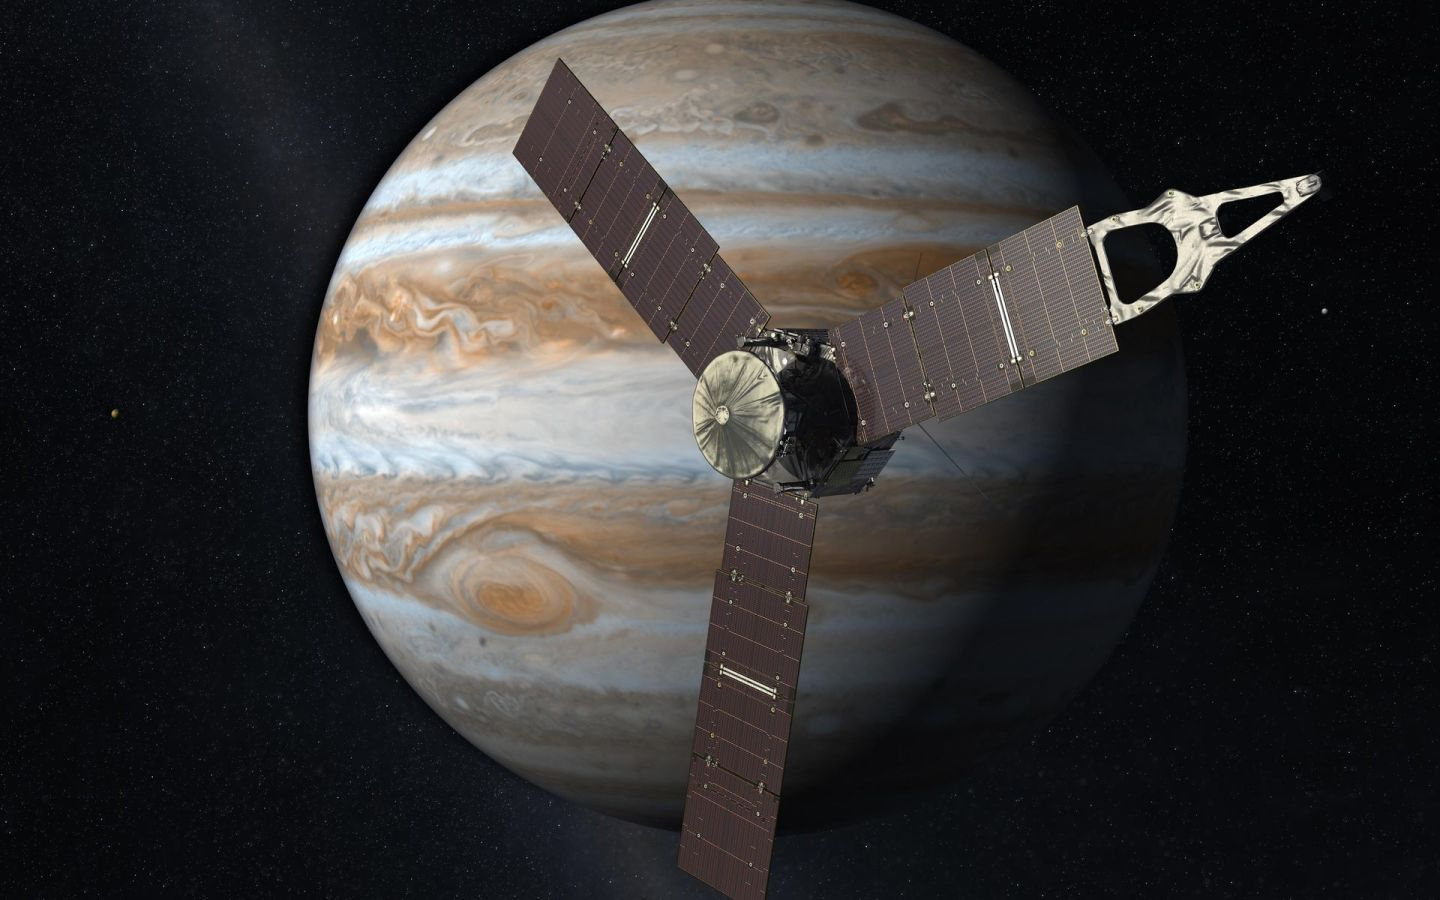 Juno will be crashed into Jupiter at the conclusion of its mission, due for July 2021